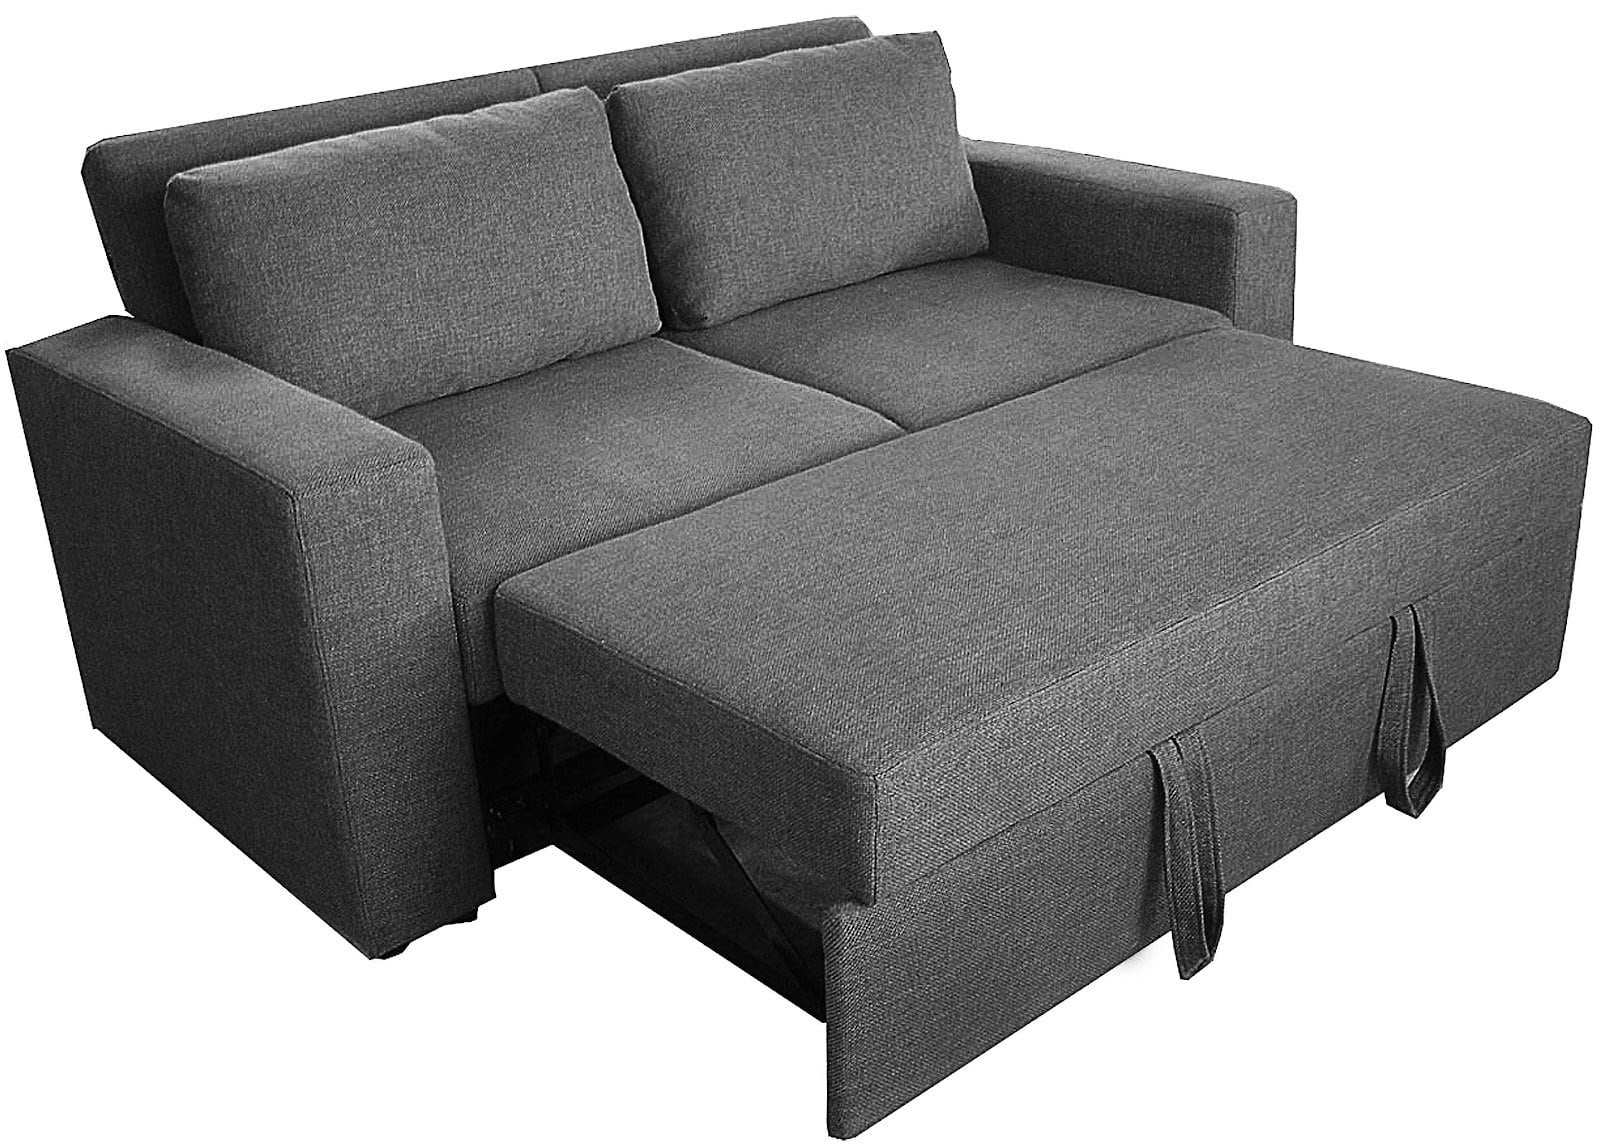 Stylish Loveseat Sofa Bed